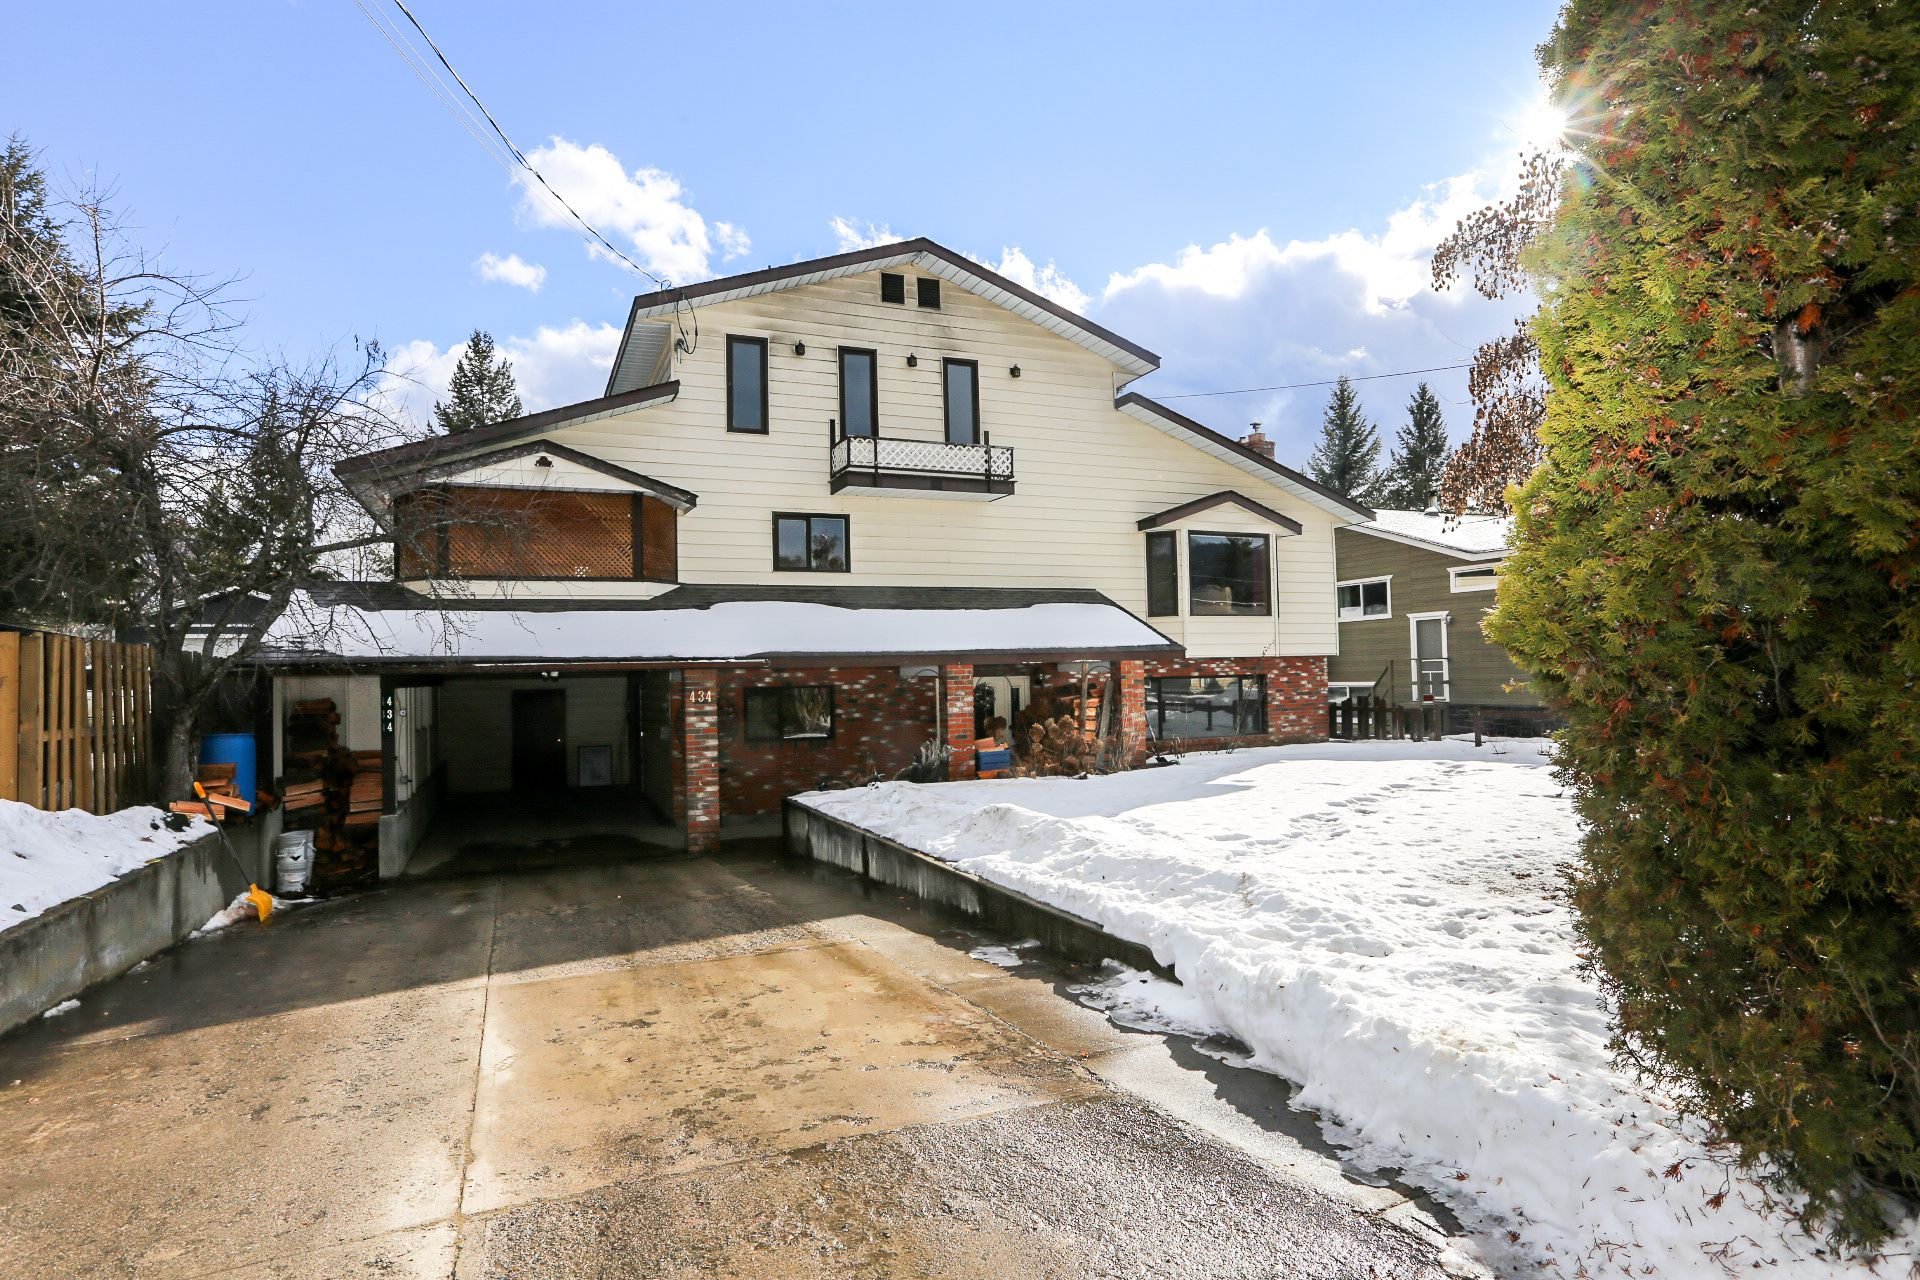 Photo 1: Photos: 434 ROBIN DRIVE: BARRIERE House for sale (NORTH EAST)  : MLS®# 160553